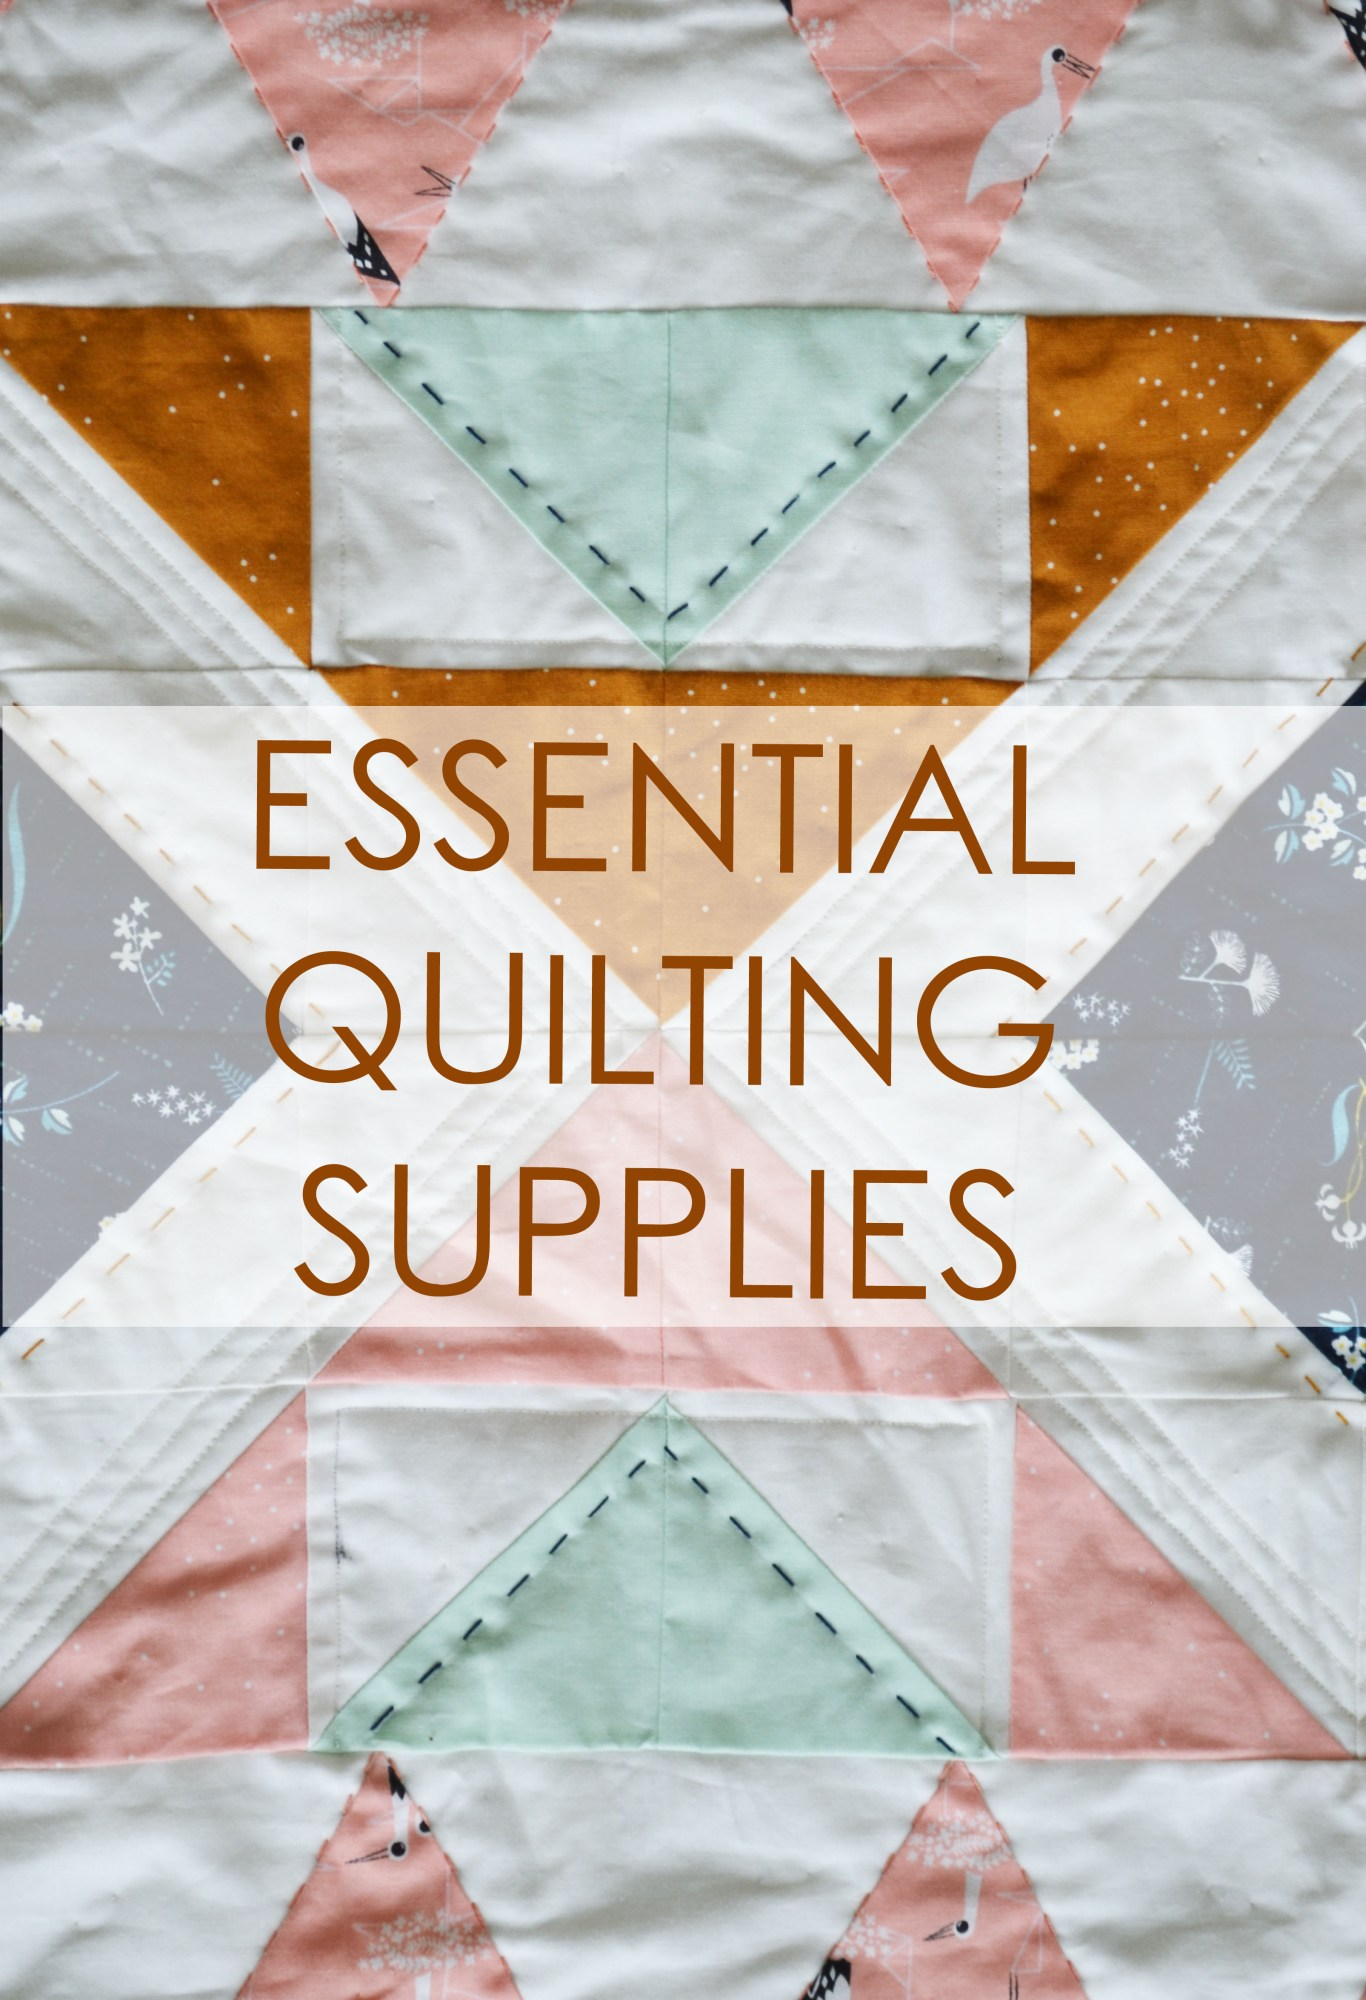 My Favorite Quilting Supplies